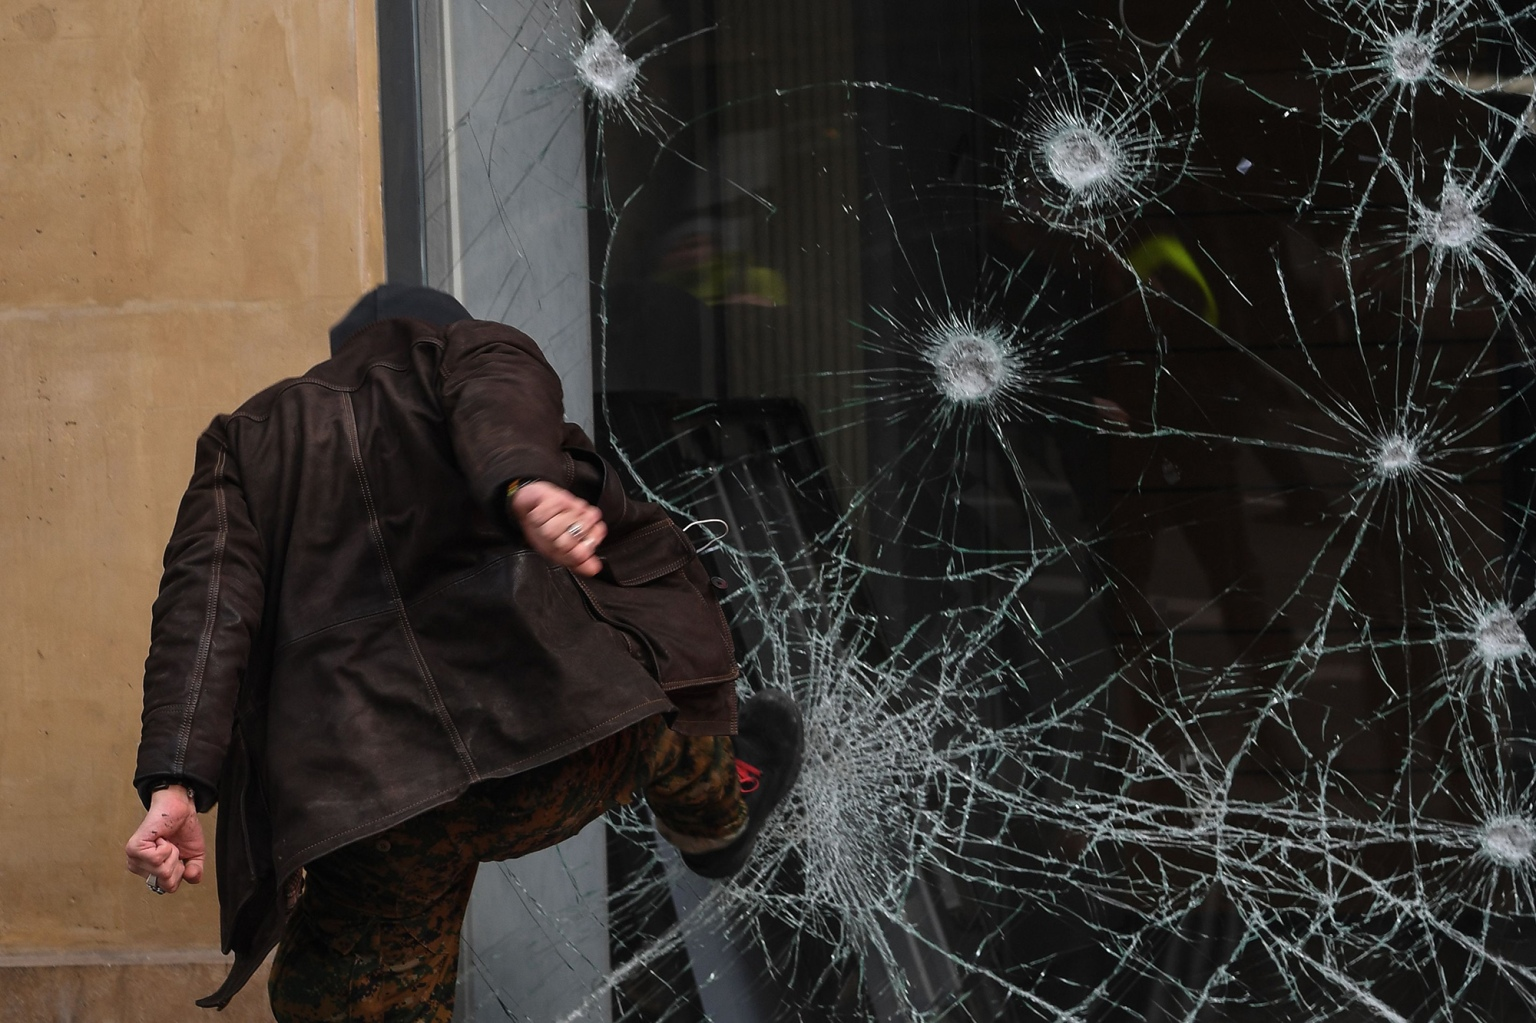 A person smashes the window of a bank a during a day of strikes called by the General Confederation of Labour French worker's union in Paris on Feb. 5. (Alain Jocard/AFP/Getty Images)